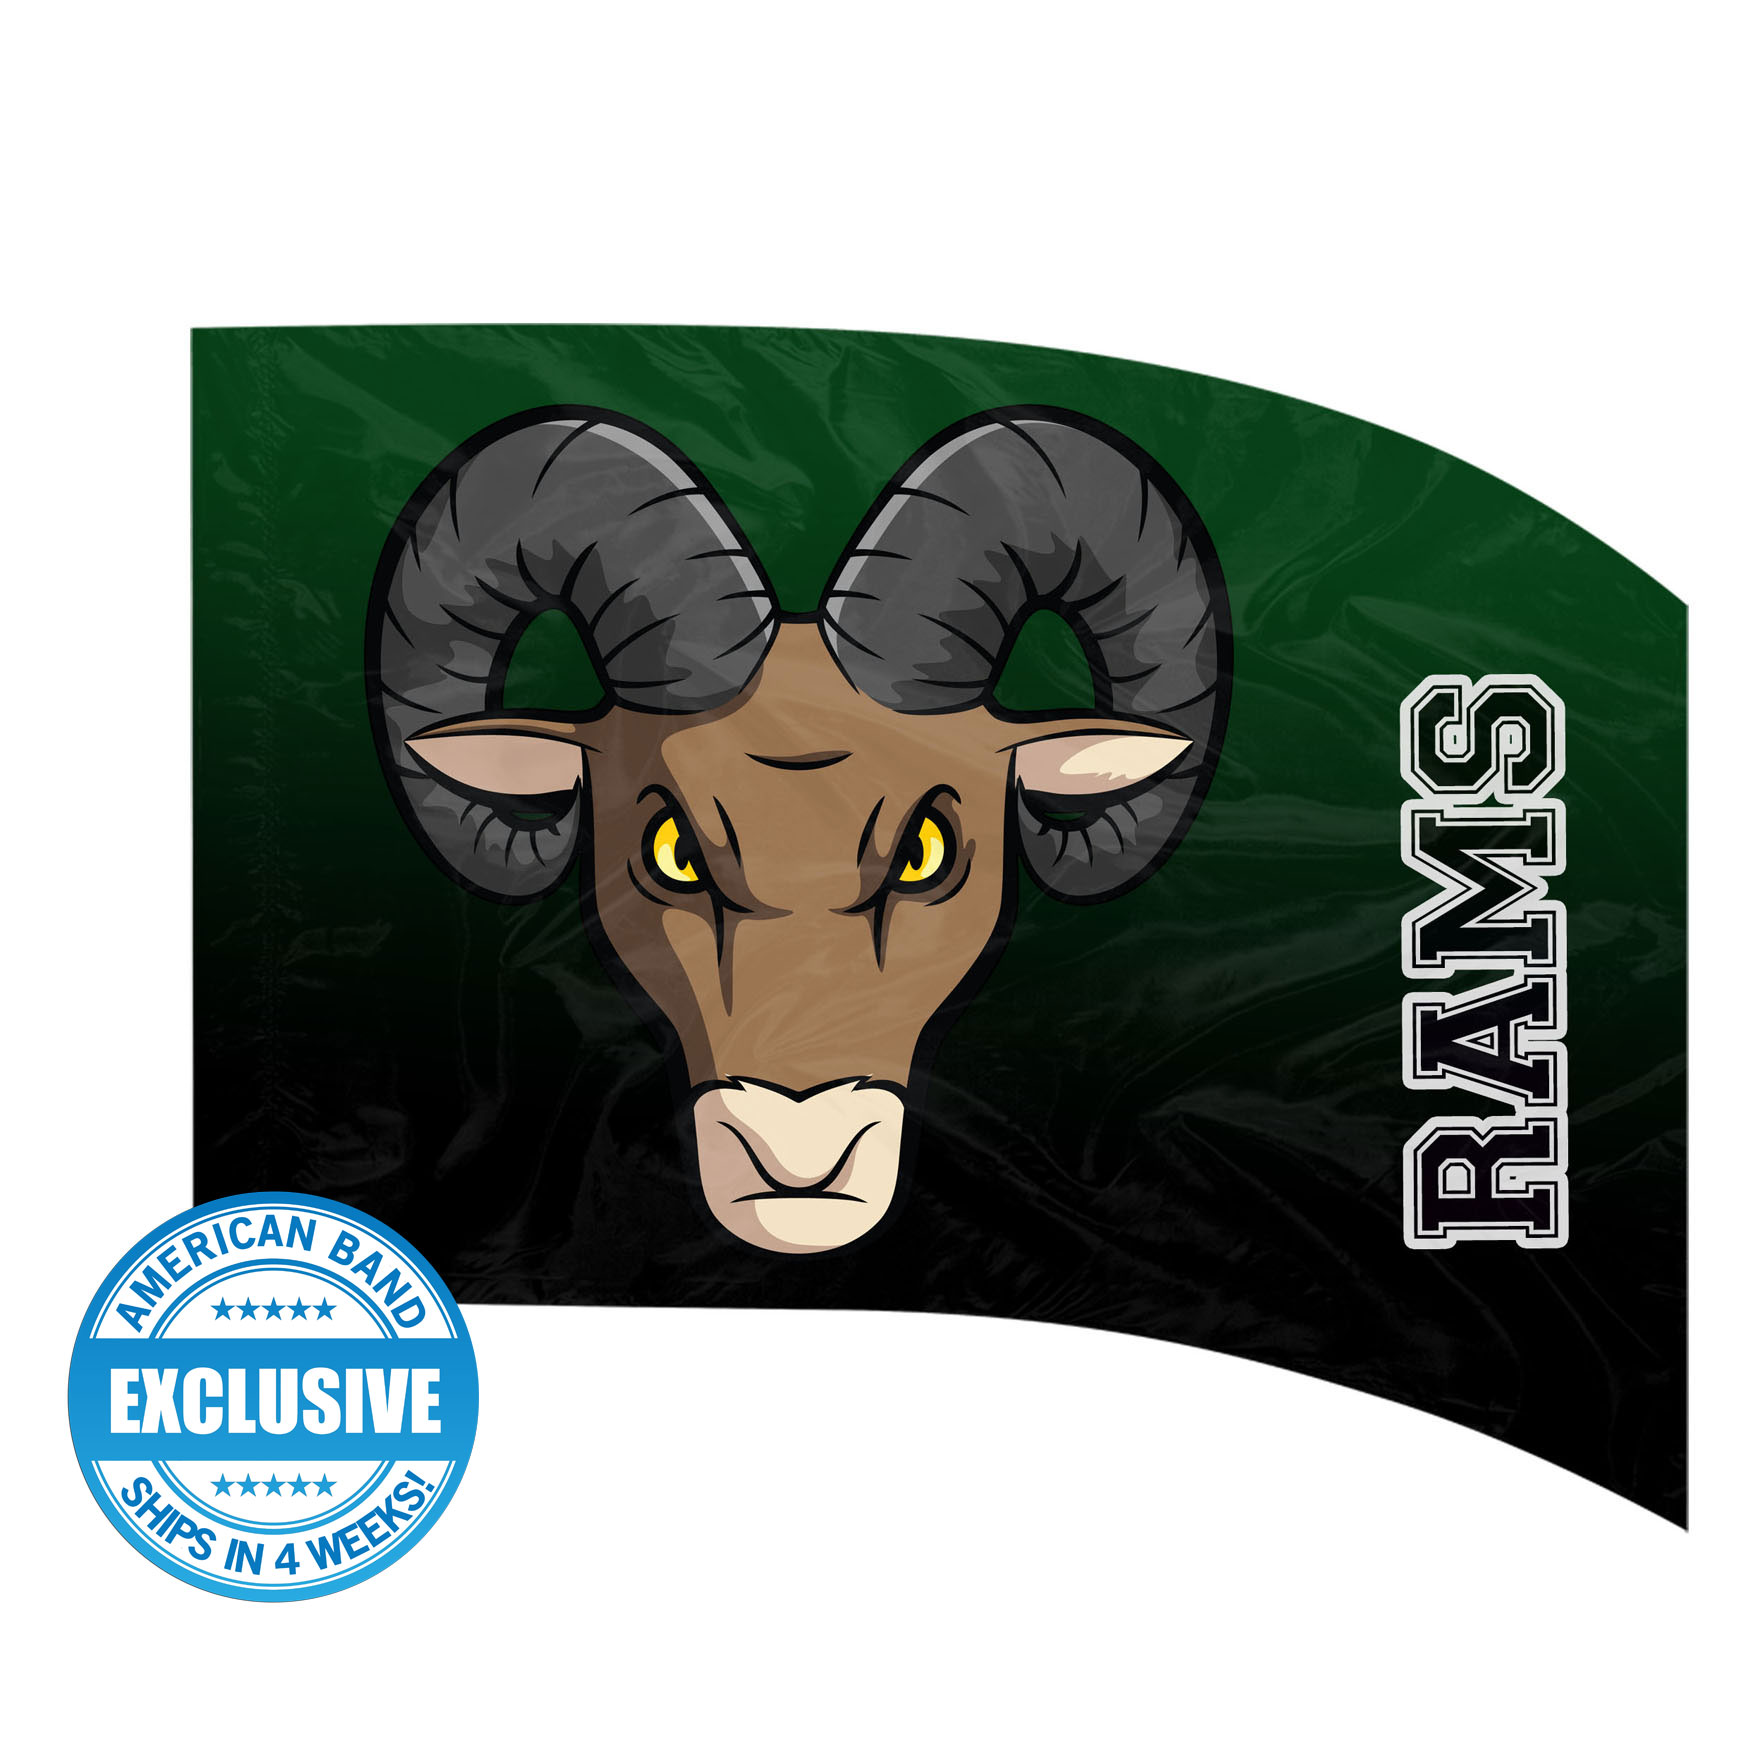 Made-to-Order Digital Mascot Flags - Rams